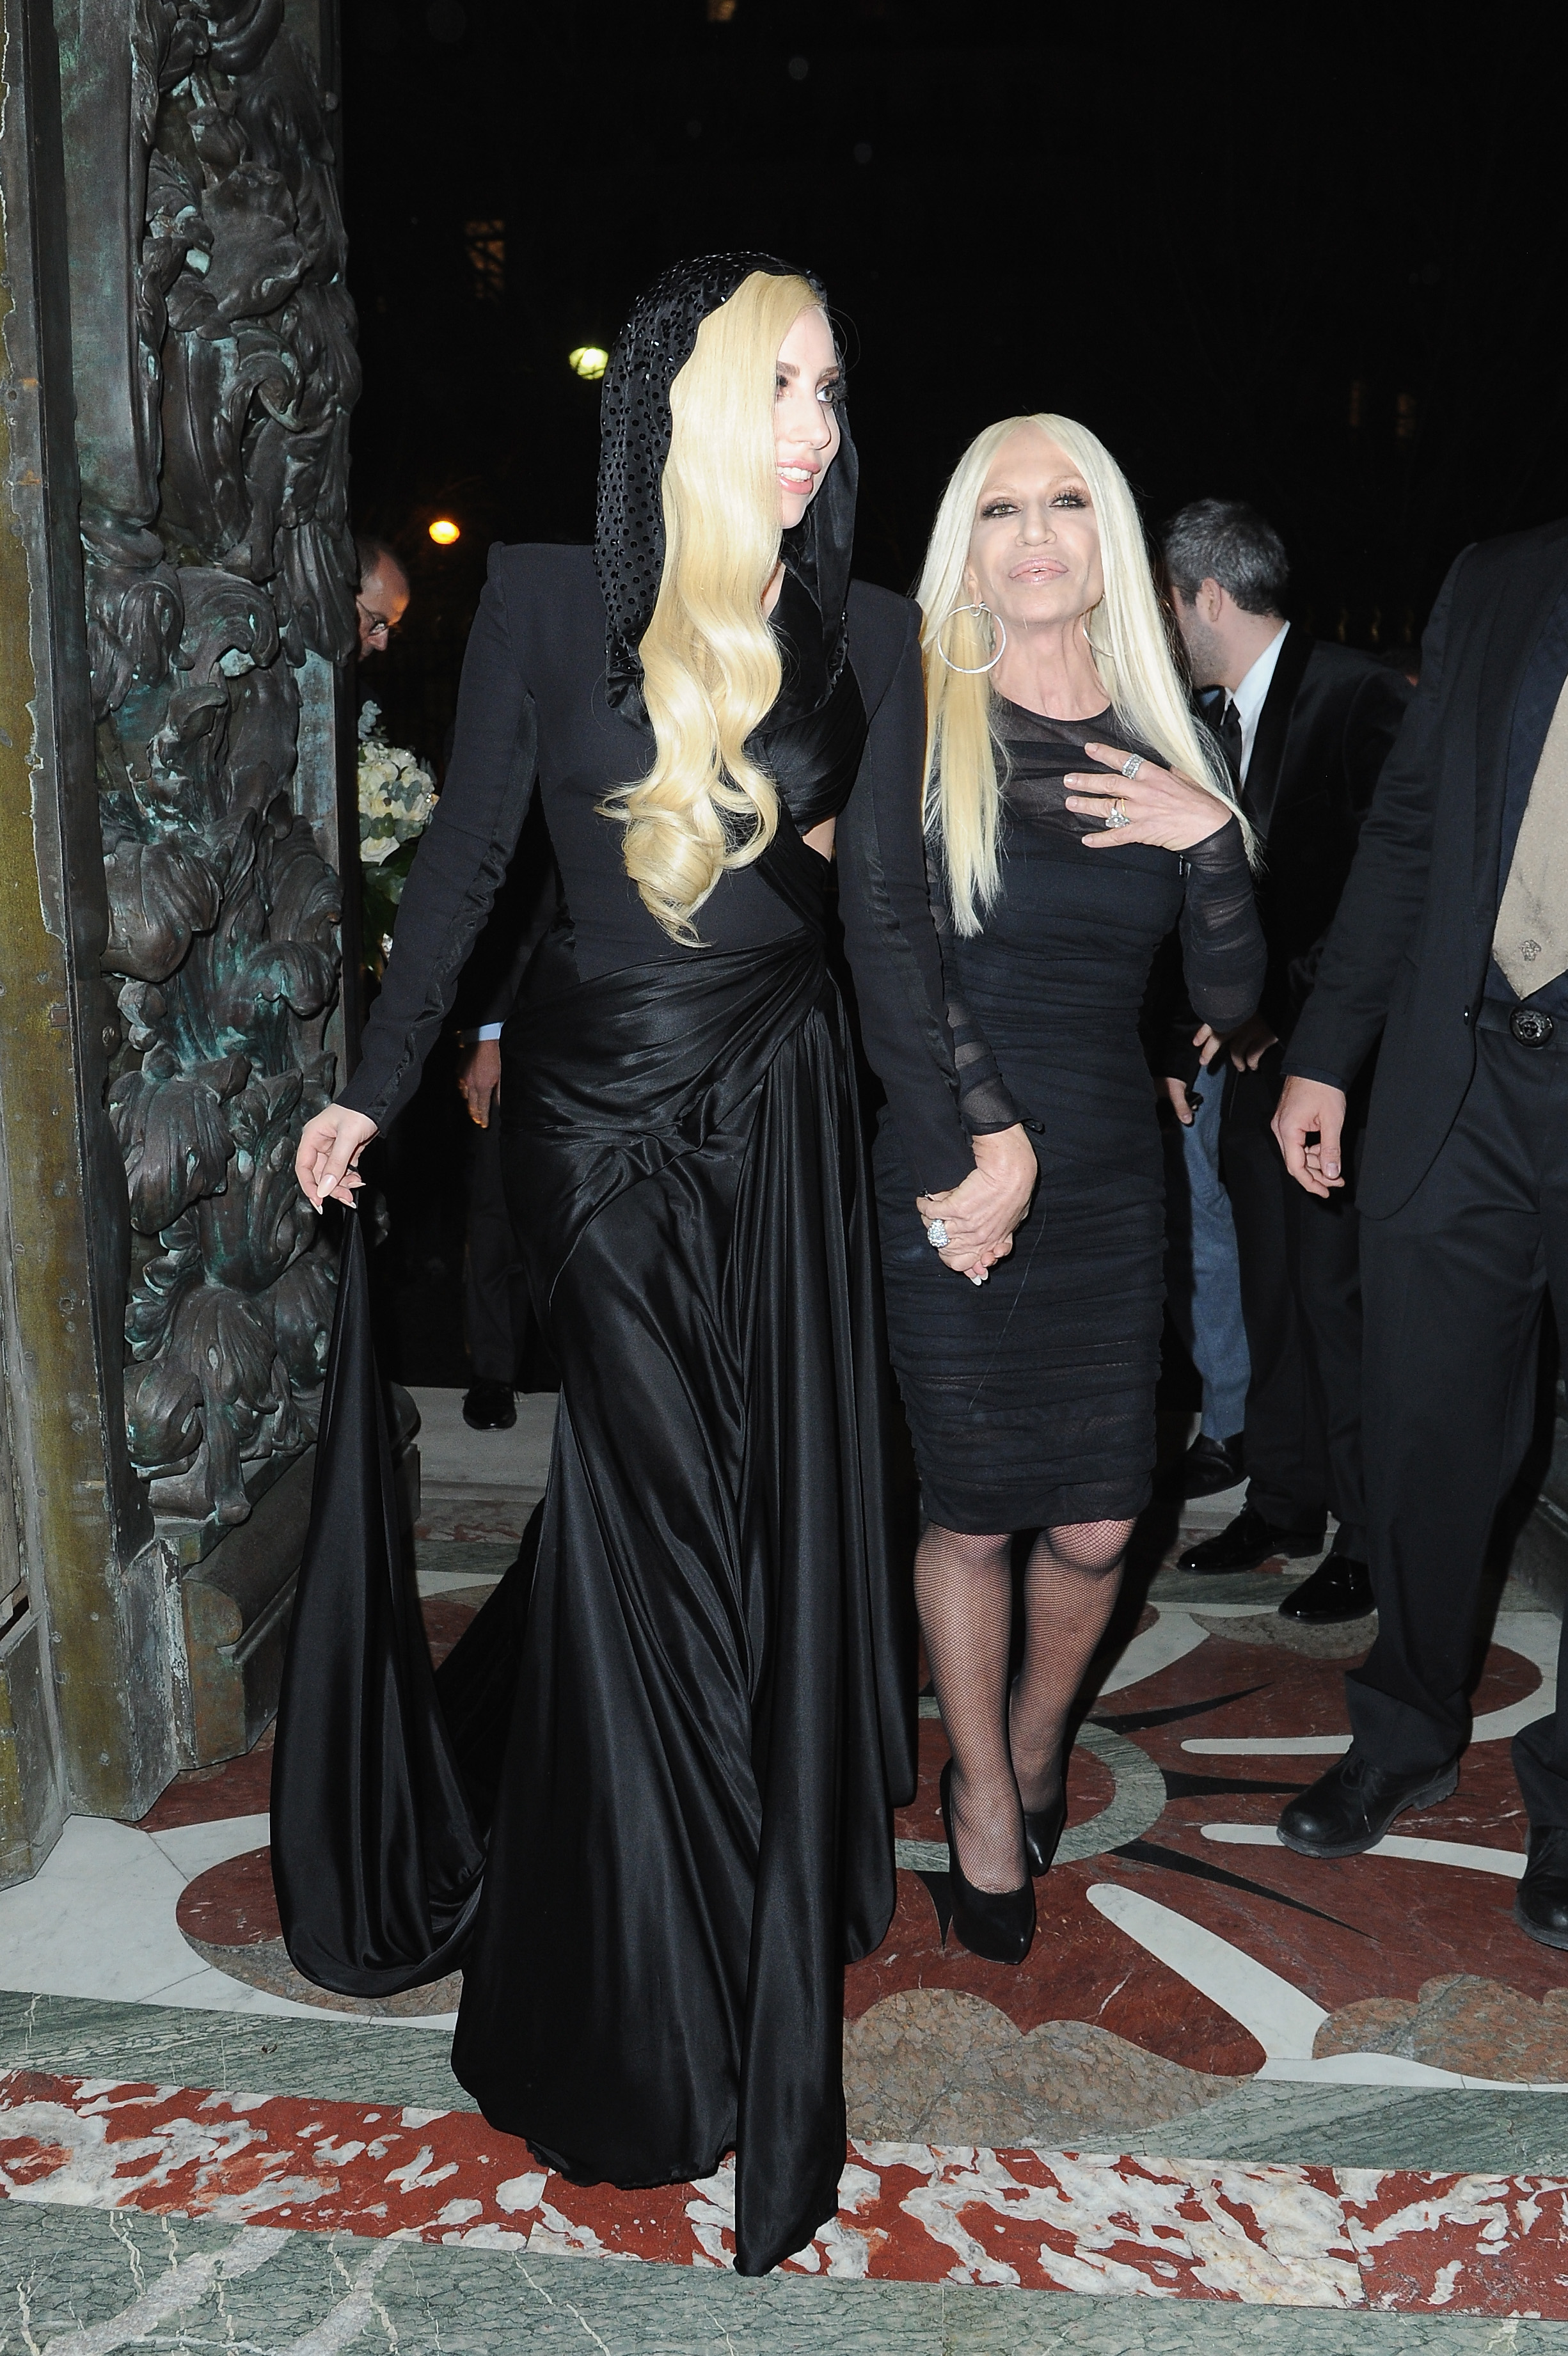 PARIS, FRANCE - JANUARY 19:  (L-R) Lady Gaga and Donatella Versace attend the Atelier Versace show as part of Paris Fashion Week Haute Couture Spring/Summer 2014 on January 19, 2014 in Paris, France.  (Photo by Pascal Le Segretain/Getty Images)